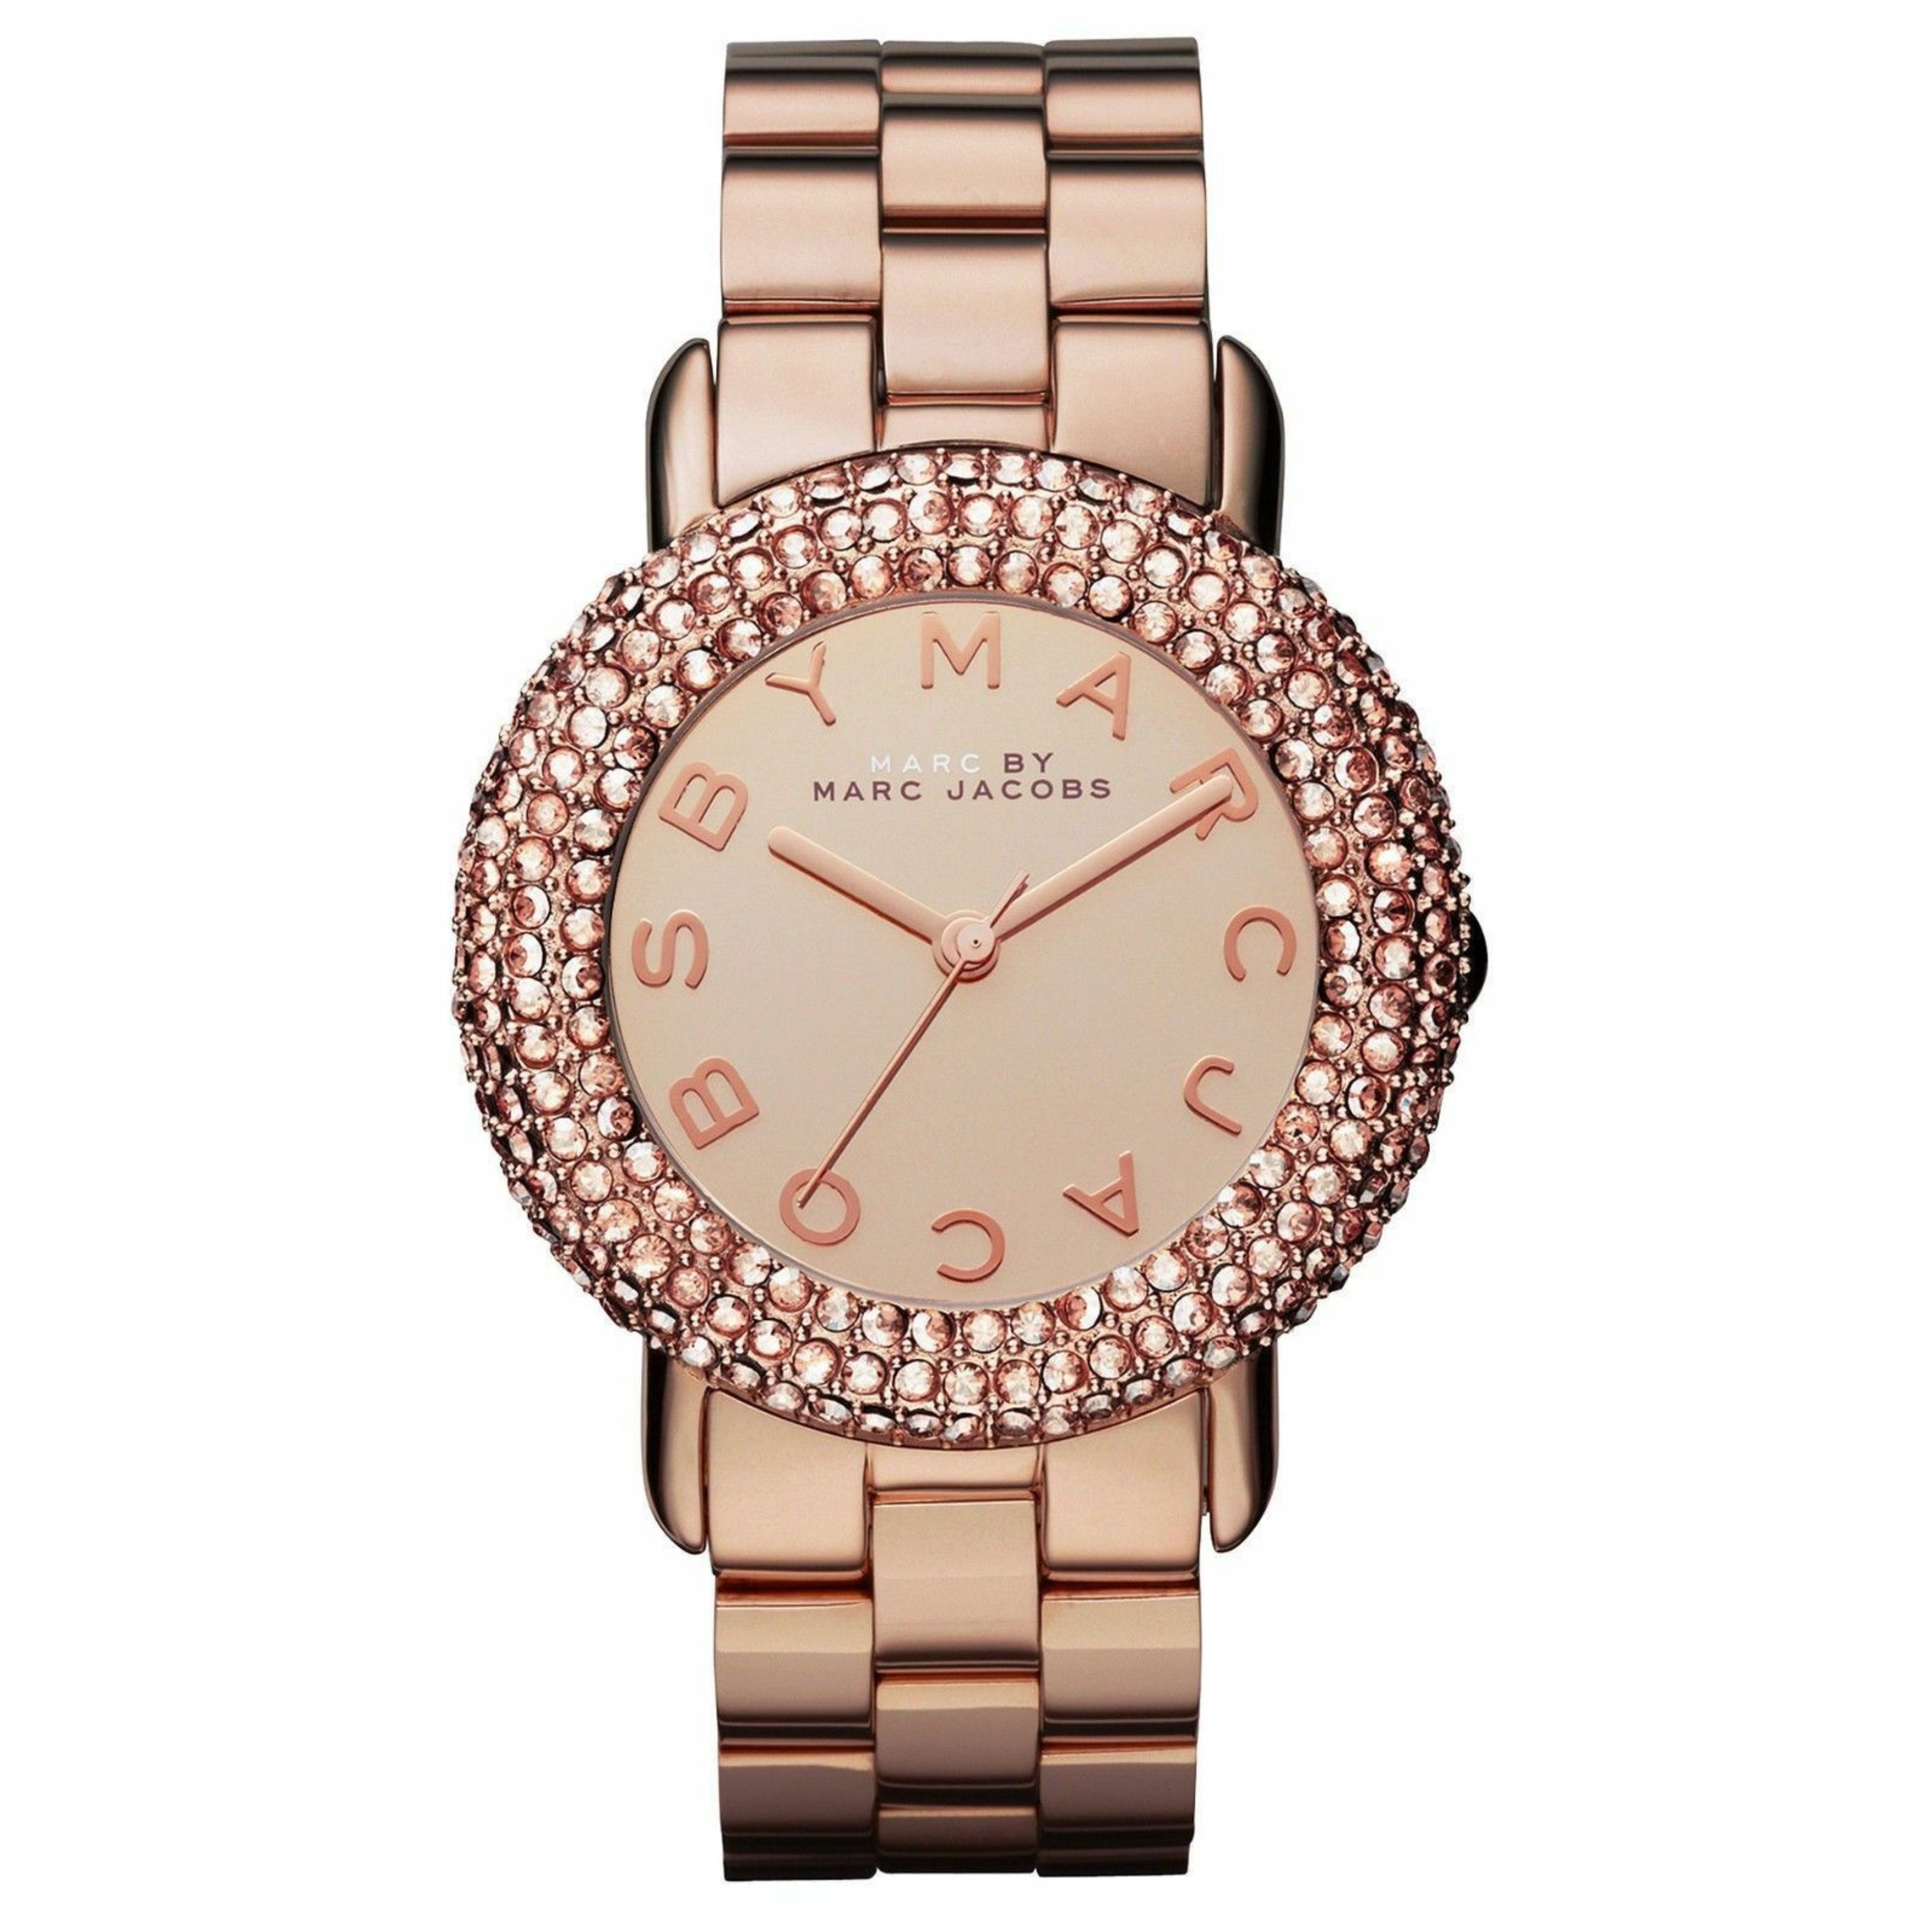 Marc Jacobs Marci Ladies Watch | Crystal Bezel Rose Gold Dial | Stainless | MBM3192